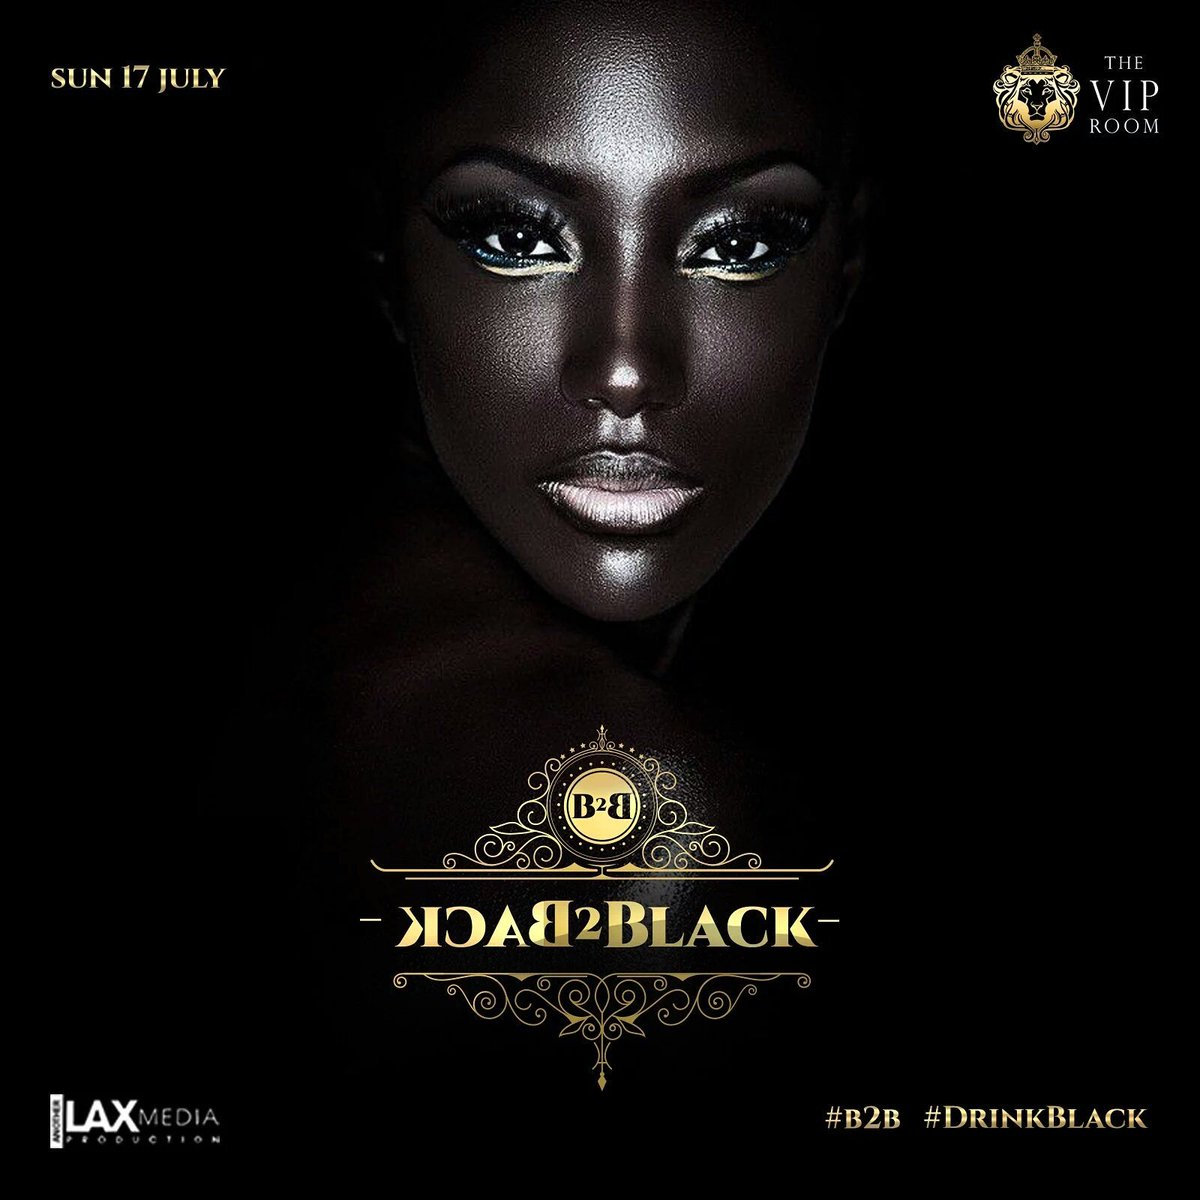 #B2B launches this Sunday @VIPRoom_URBAN #back2black https://t.co/feVmqYQUCi